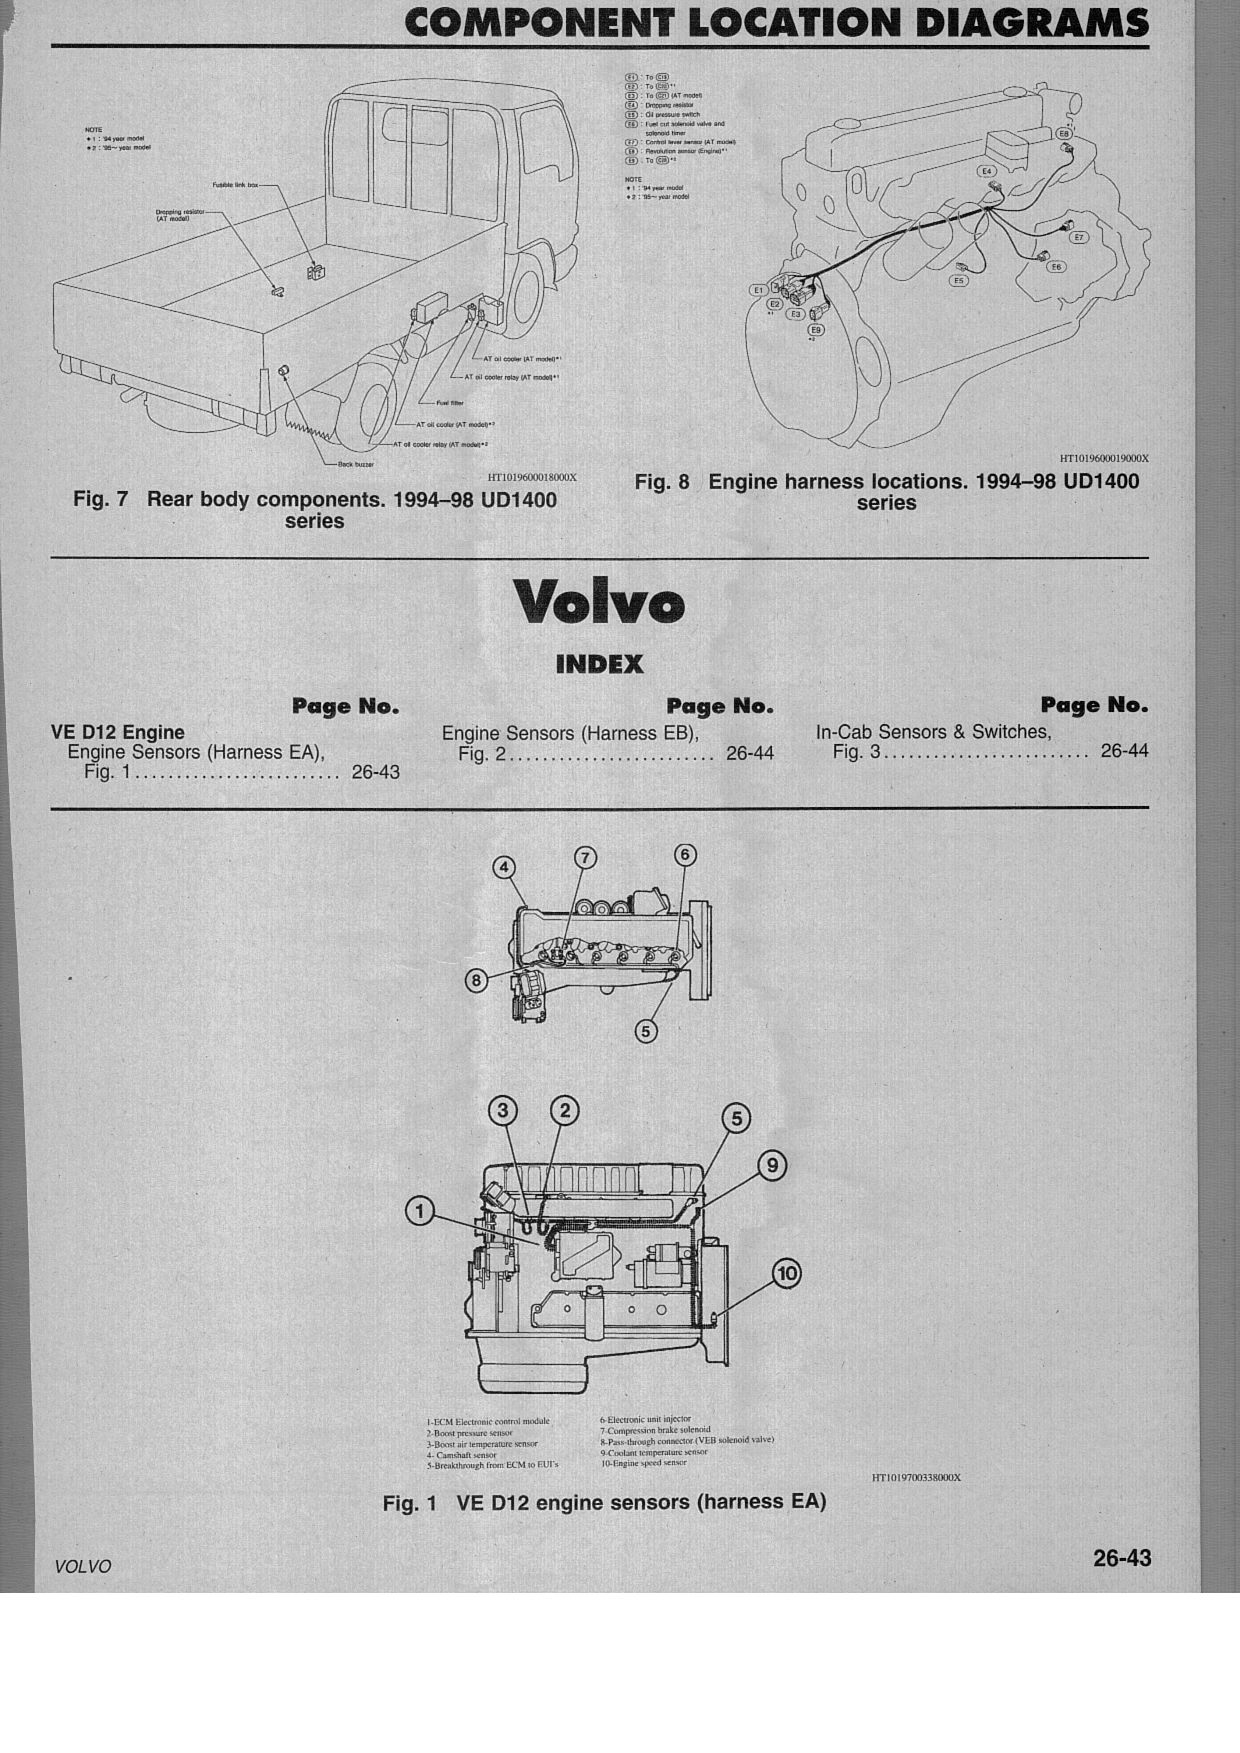 2009 11 16_172446_Volvo_D12_sensor_locations_pg1 gem car wiring diagram gem car service, gem car 1992, gem car gem car wiring diagram at bayanpartner.co